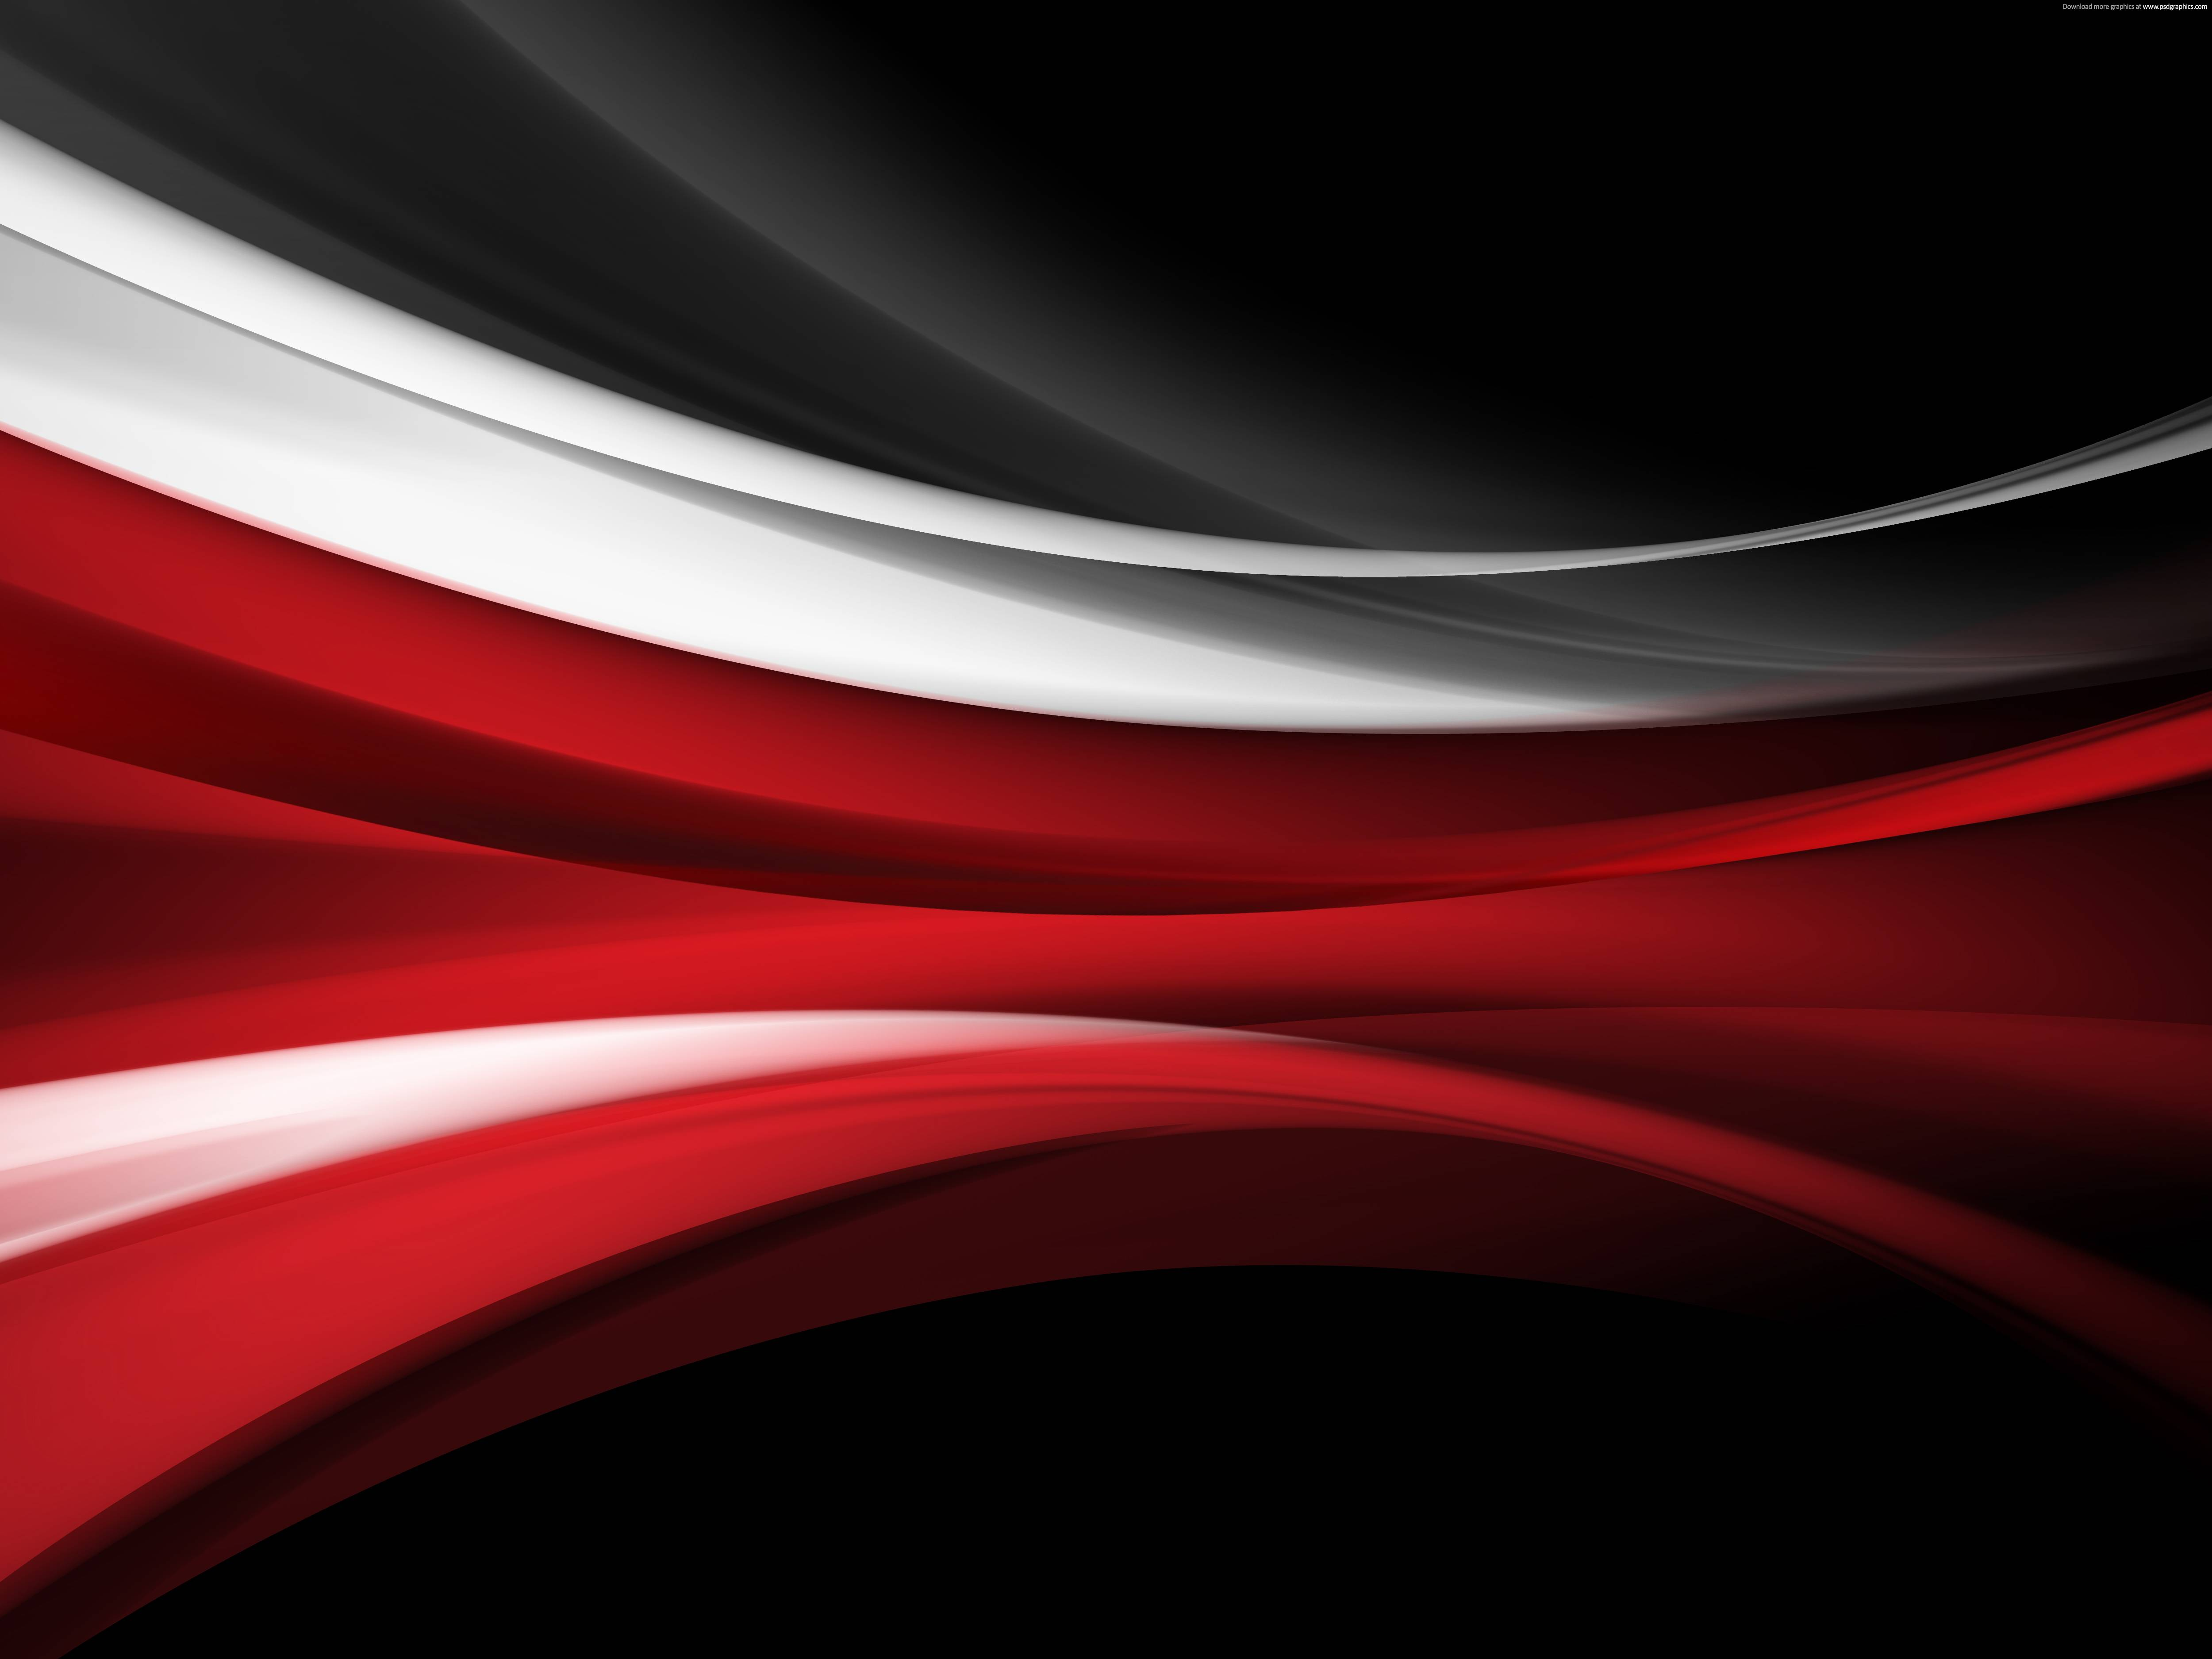 Red and black flow backgrounds